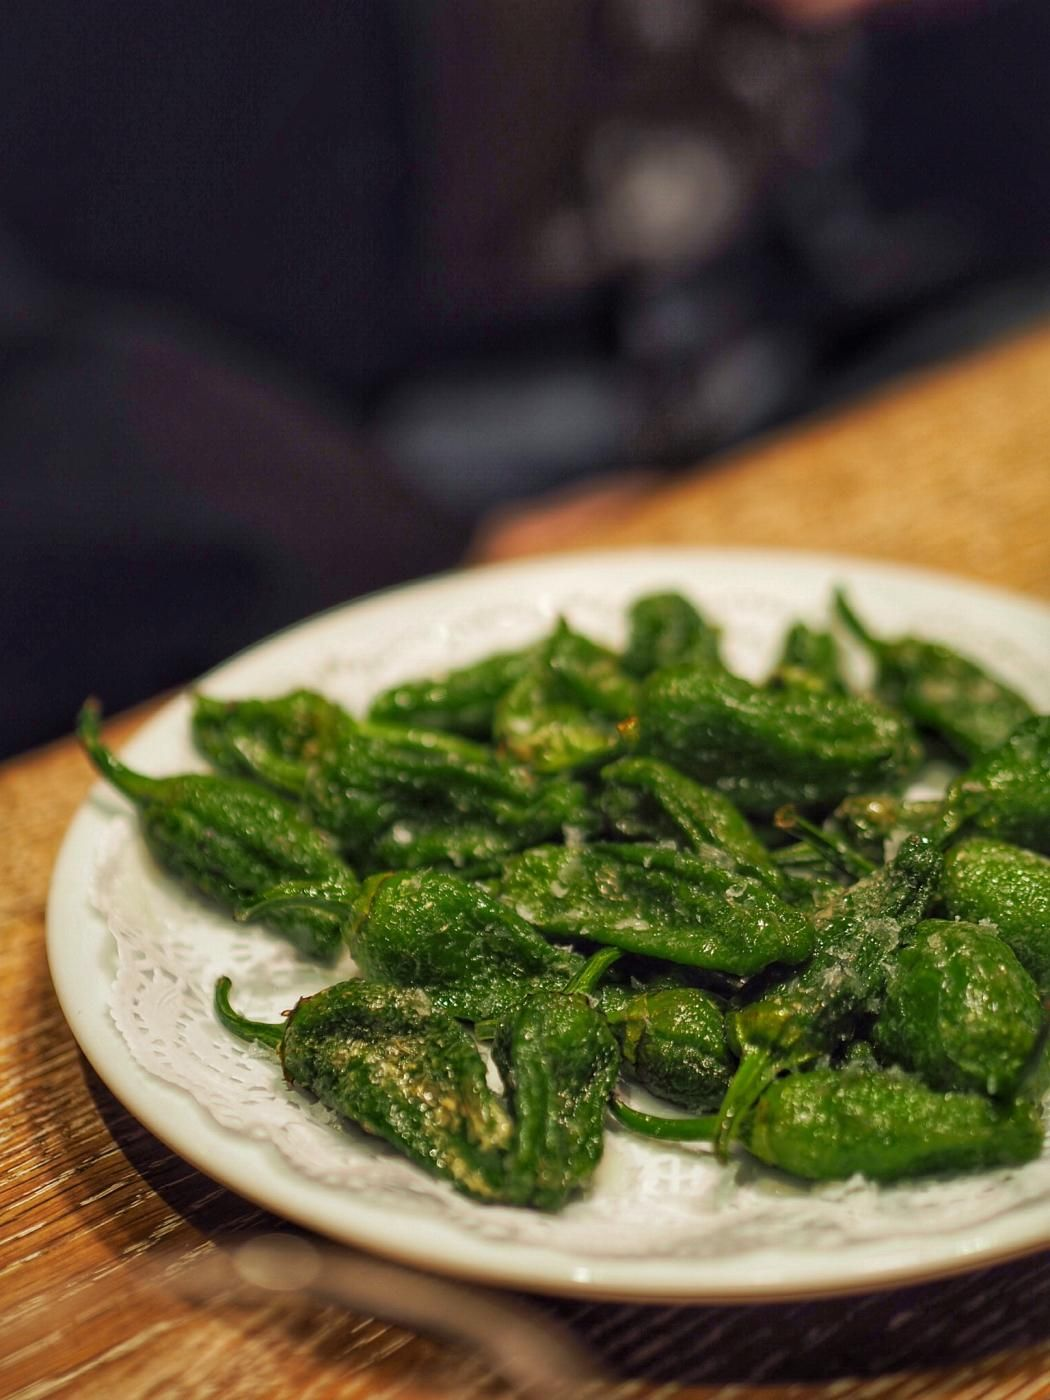 Padrón peppers at Paco Meralgo in Barcelona.